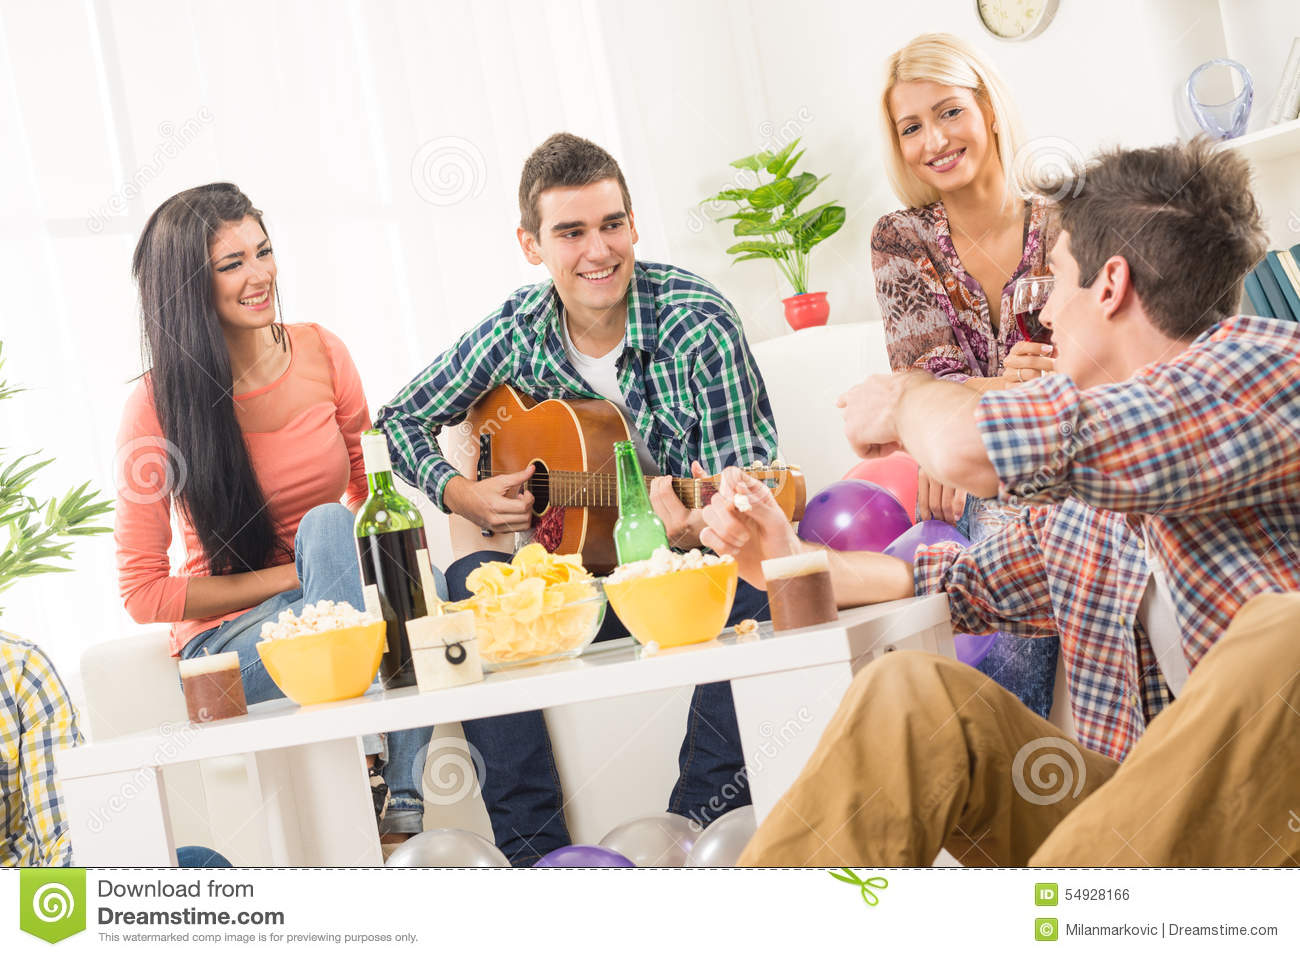 Friends At House Party Stock Photo - Image: 54928166